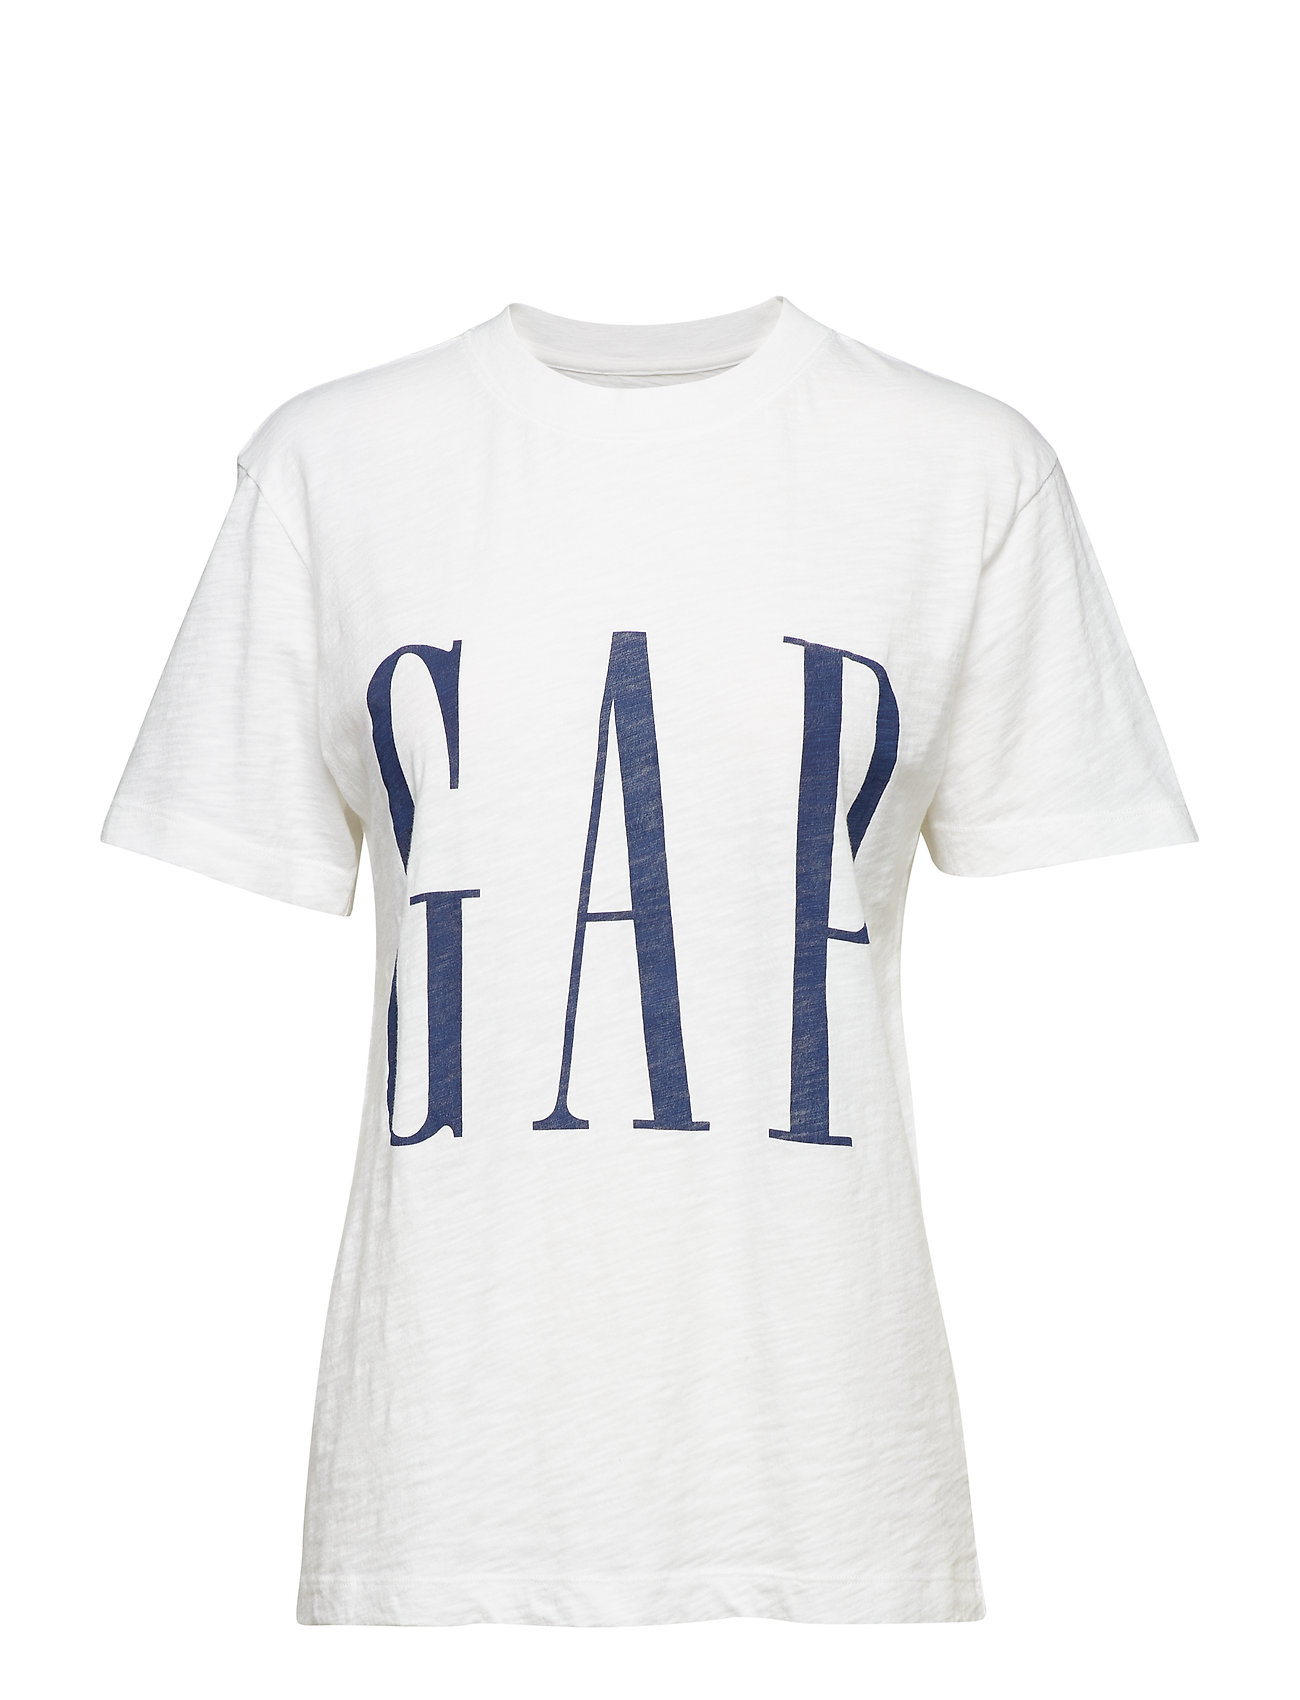 GAP Oversized Logo Graphic Short Sleeve Crewneck T-Shirt - WHITE000